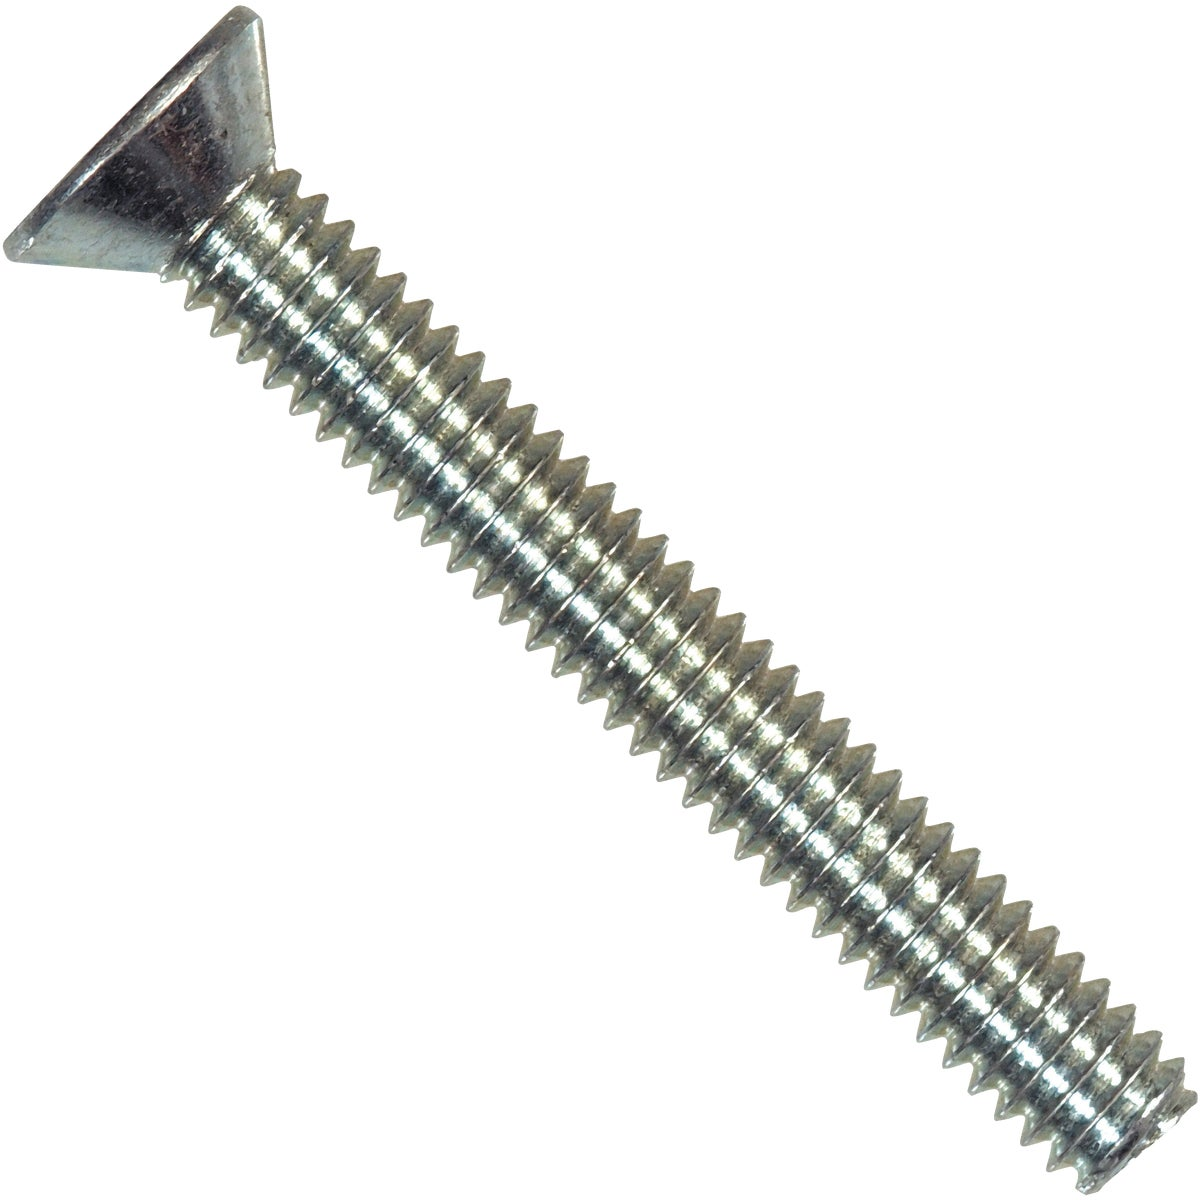 10-24X3/4 PH MACH SCREW - 101077 by Hillman Fastener